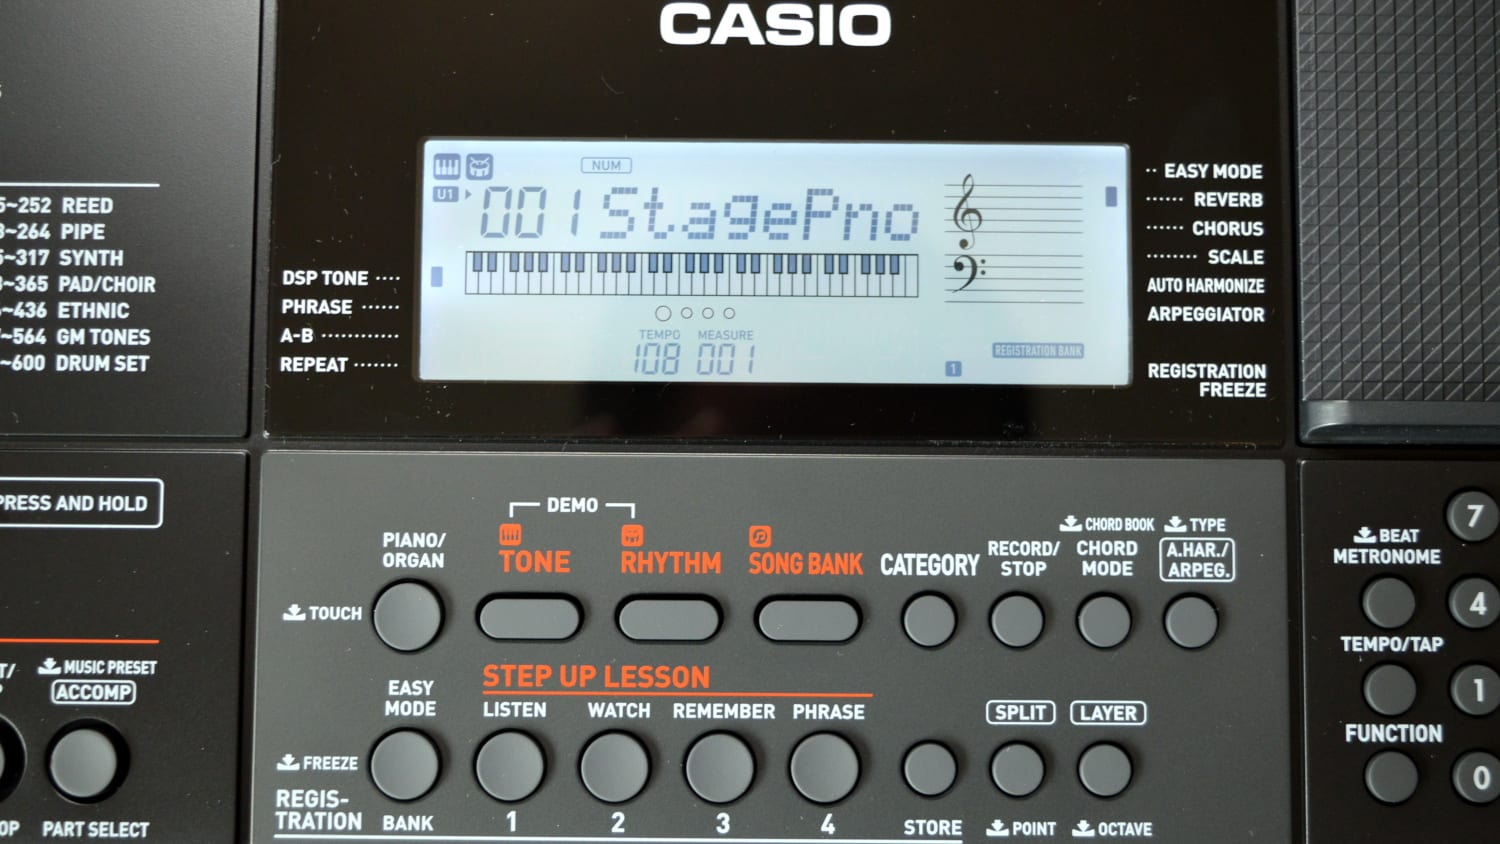 Casio CT-X700 Features